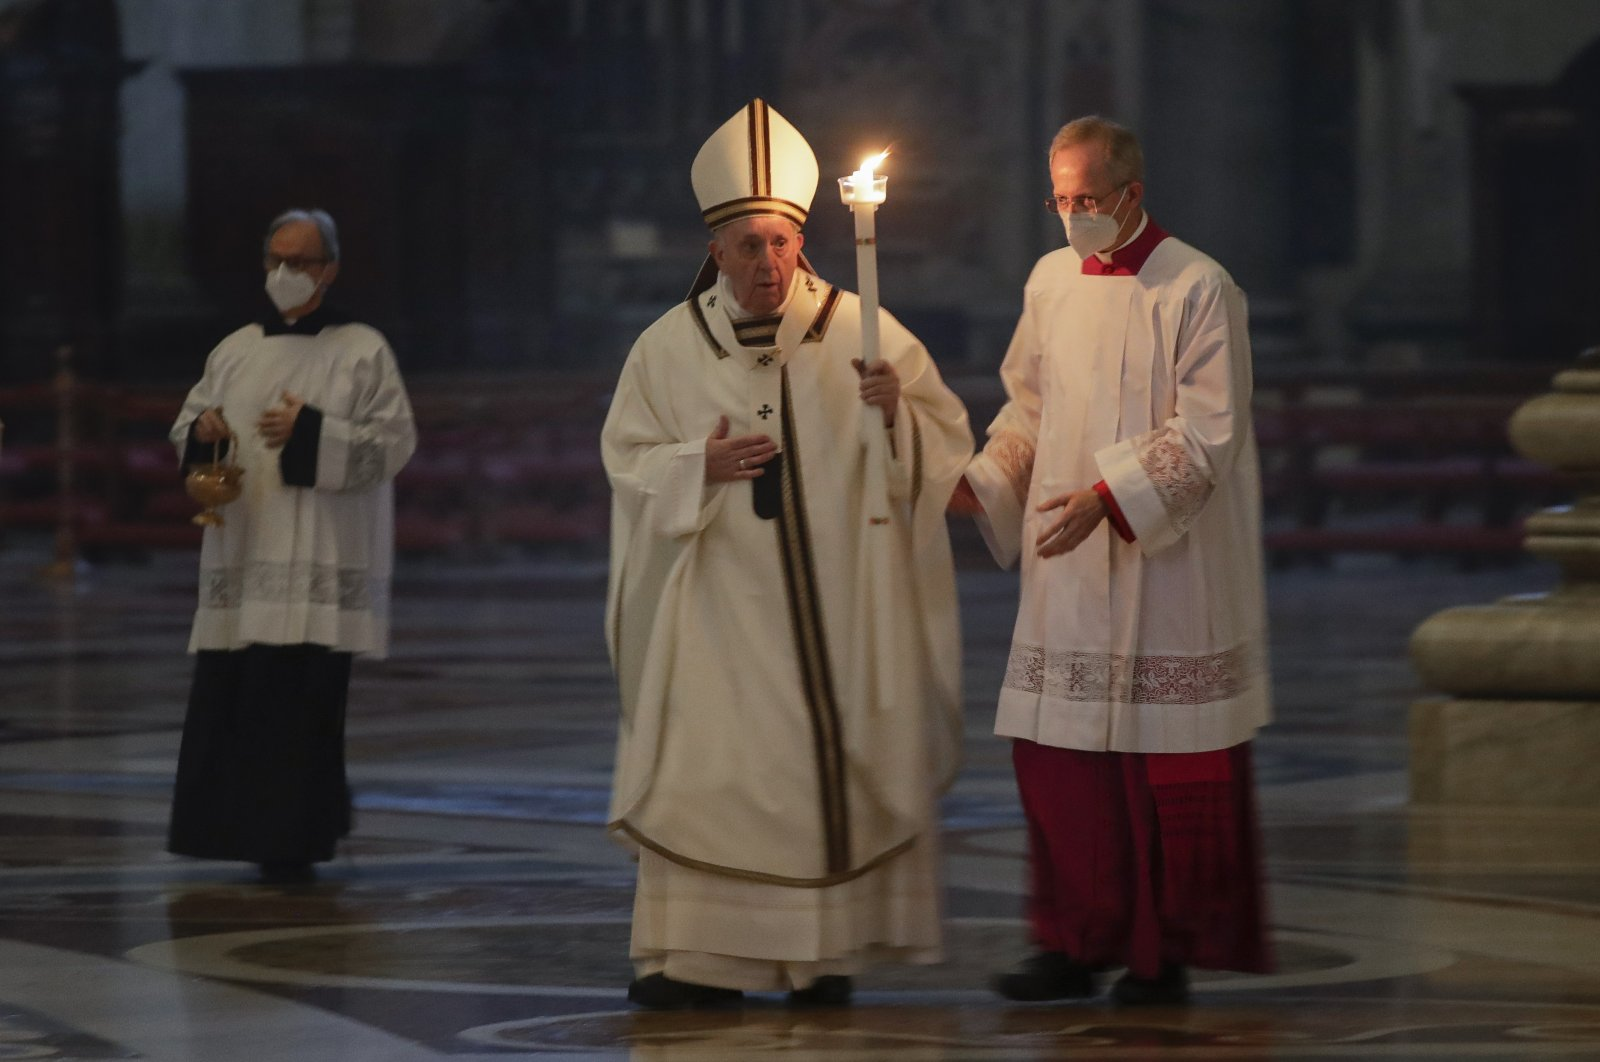 Pope Francis holds a candle as he arrives to celebrate a mass with members of religious institutions on the occasion of the celebration of the World Day of Consecrated Life, in St. Peter's Basilica at the Vatican, Feb. 2, 2021. (AP Photo)